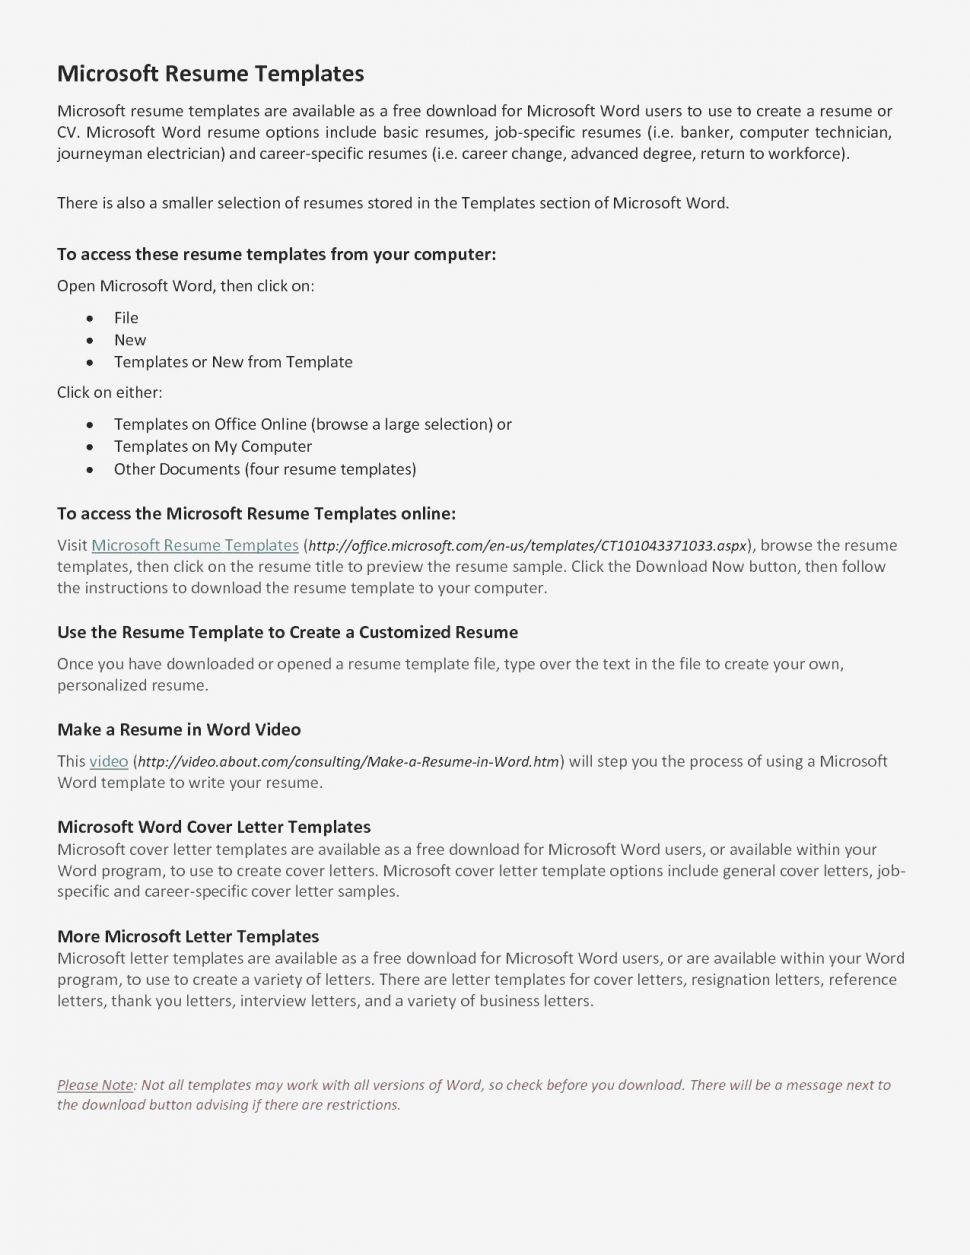 Free Resume Templates Microsoft Word Microsoft Resume Template Cool Free Resume Templates Microsoft Word Gallery 970x1255 free resume templates microsoft word|wikiresume.com